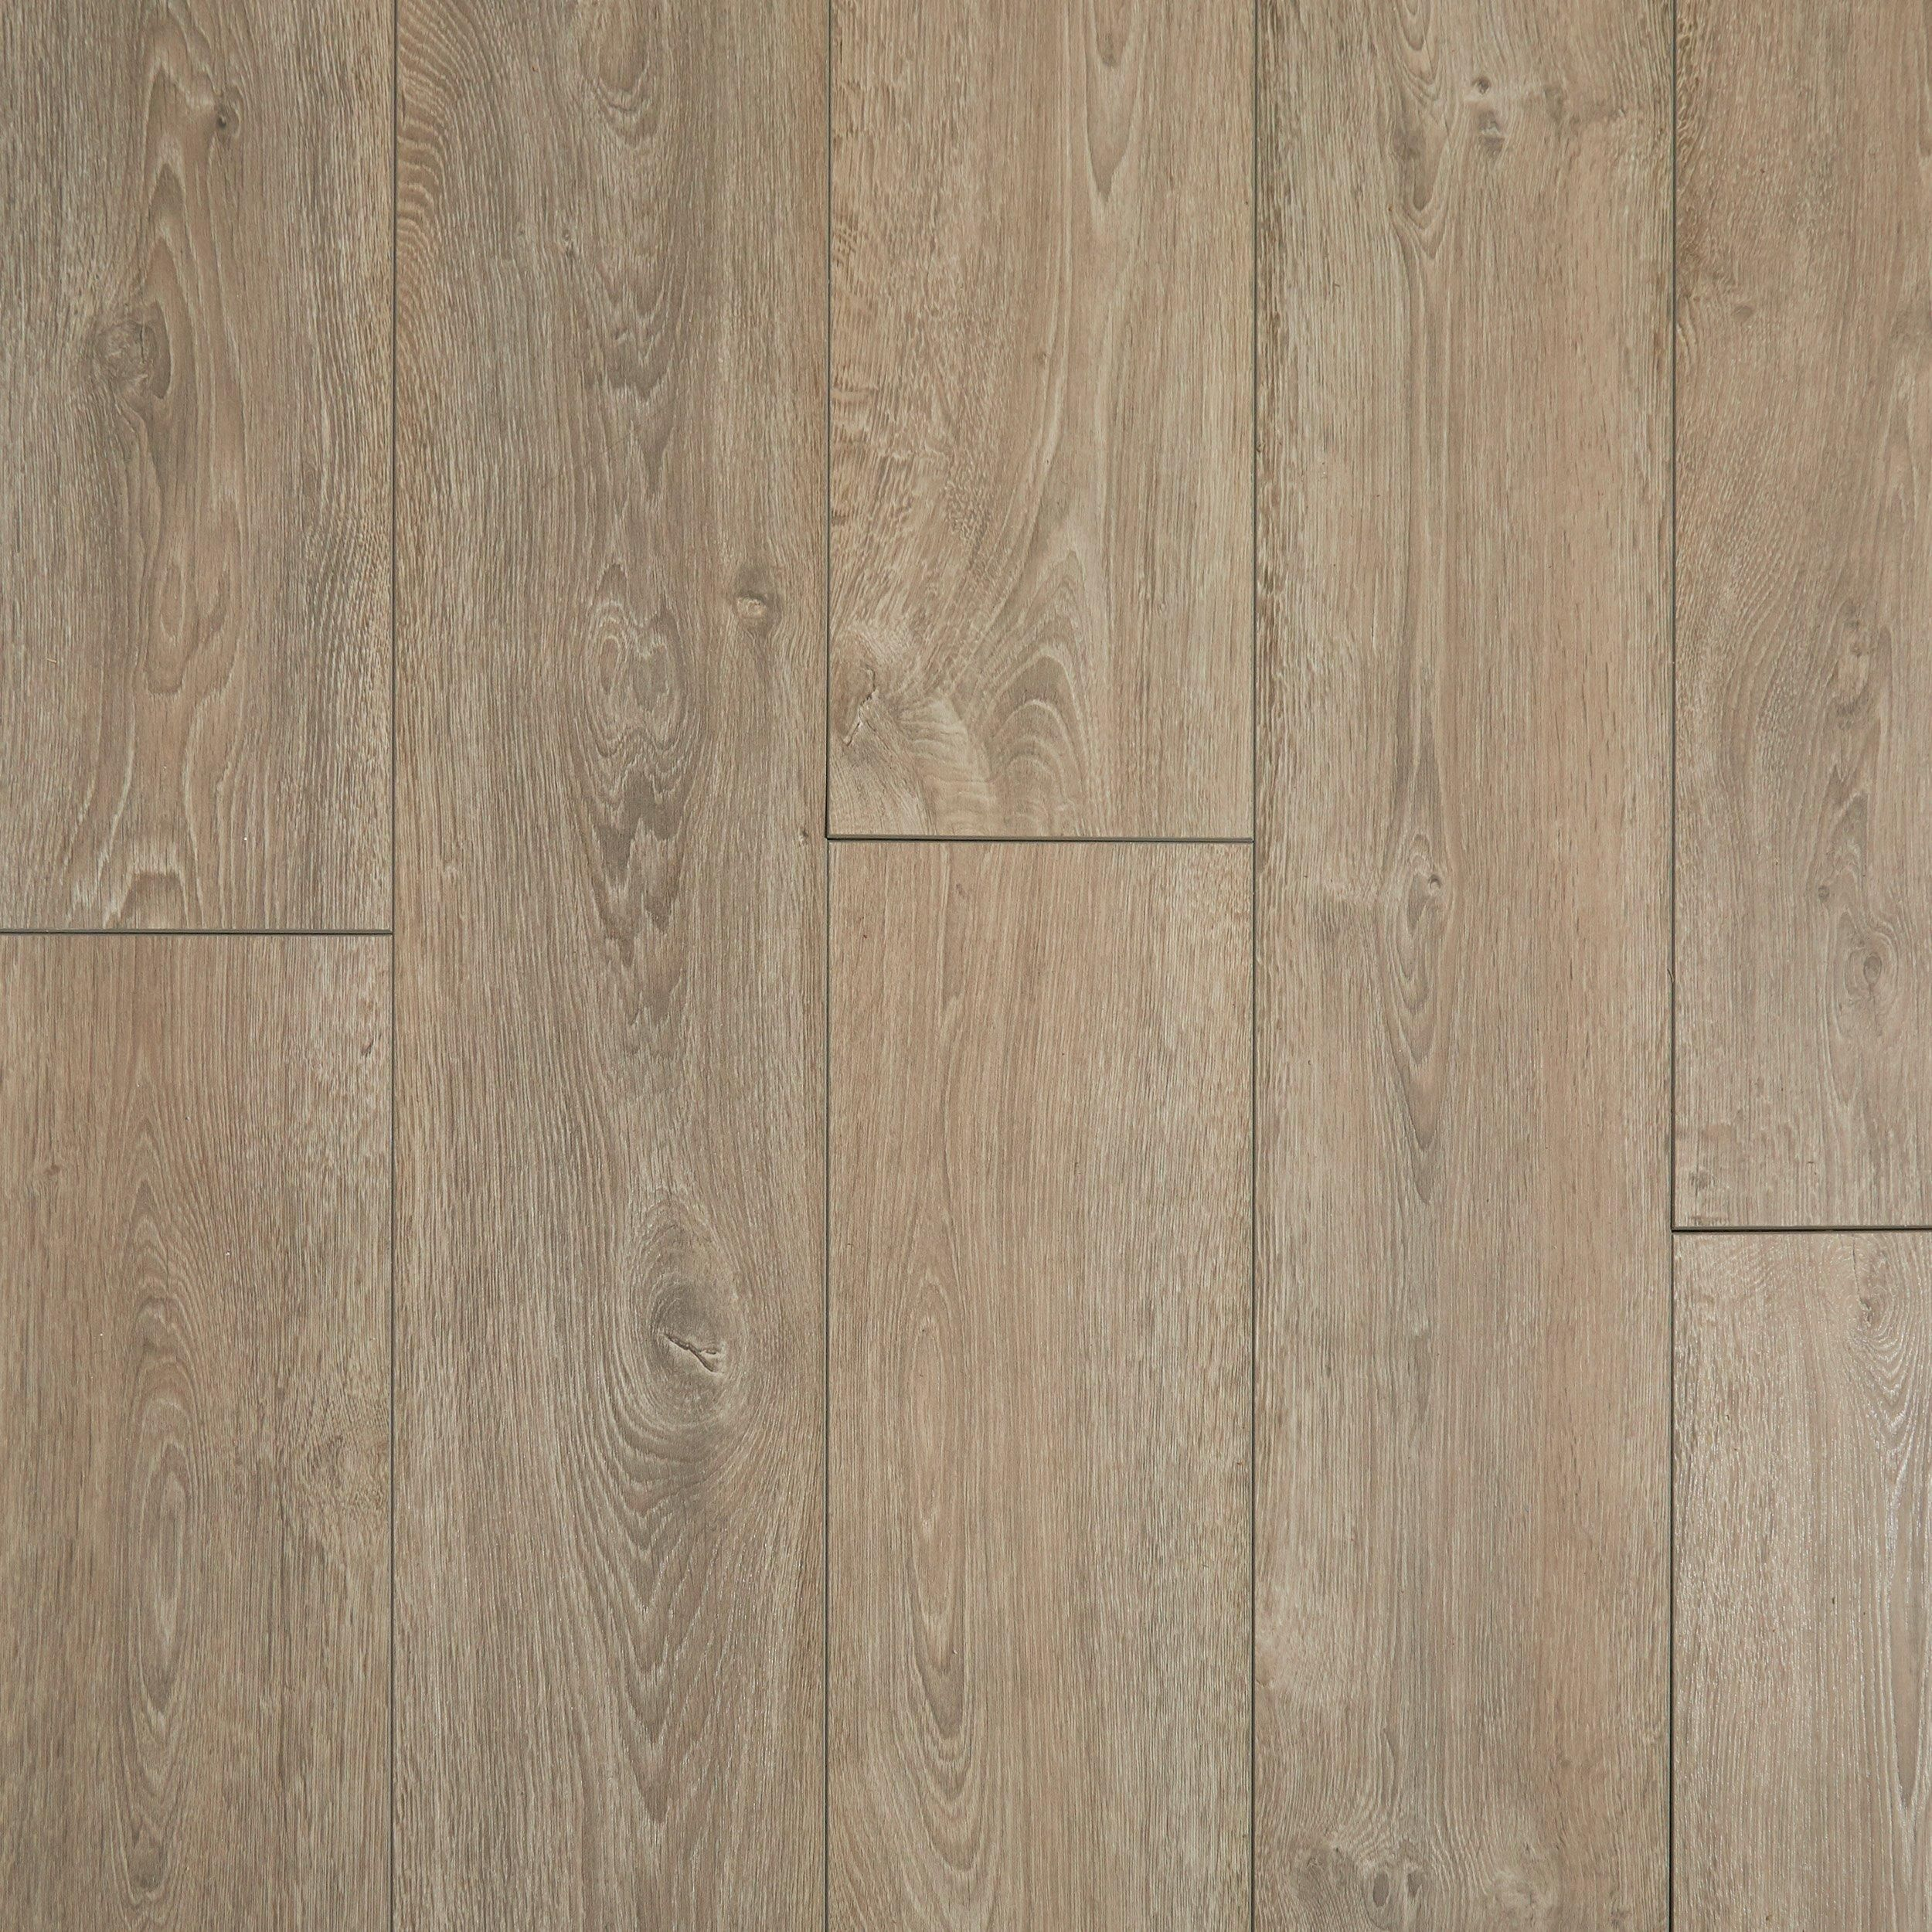 French Oak Gray Water Resistant Laminate Types Of Flooring Tile Floors